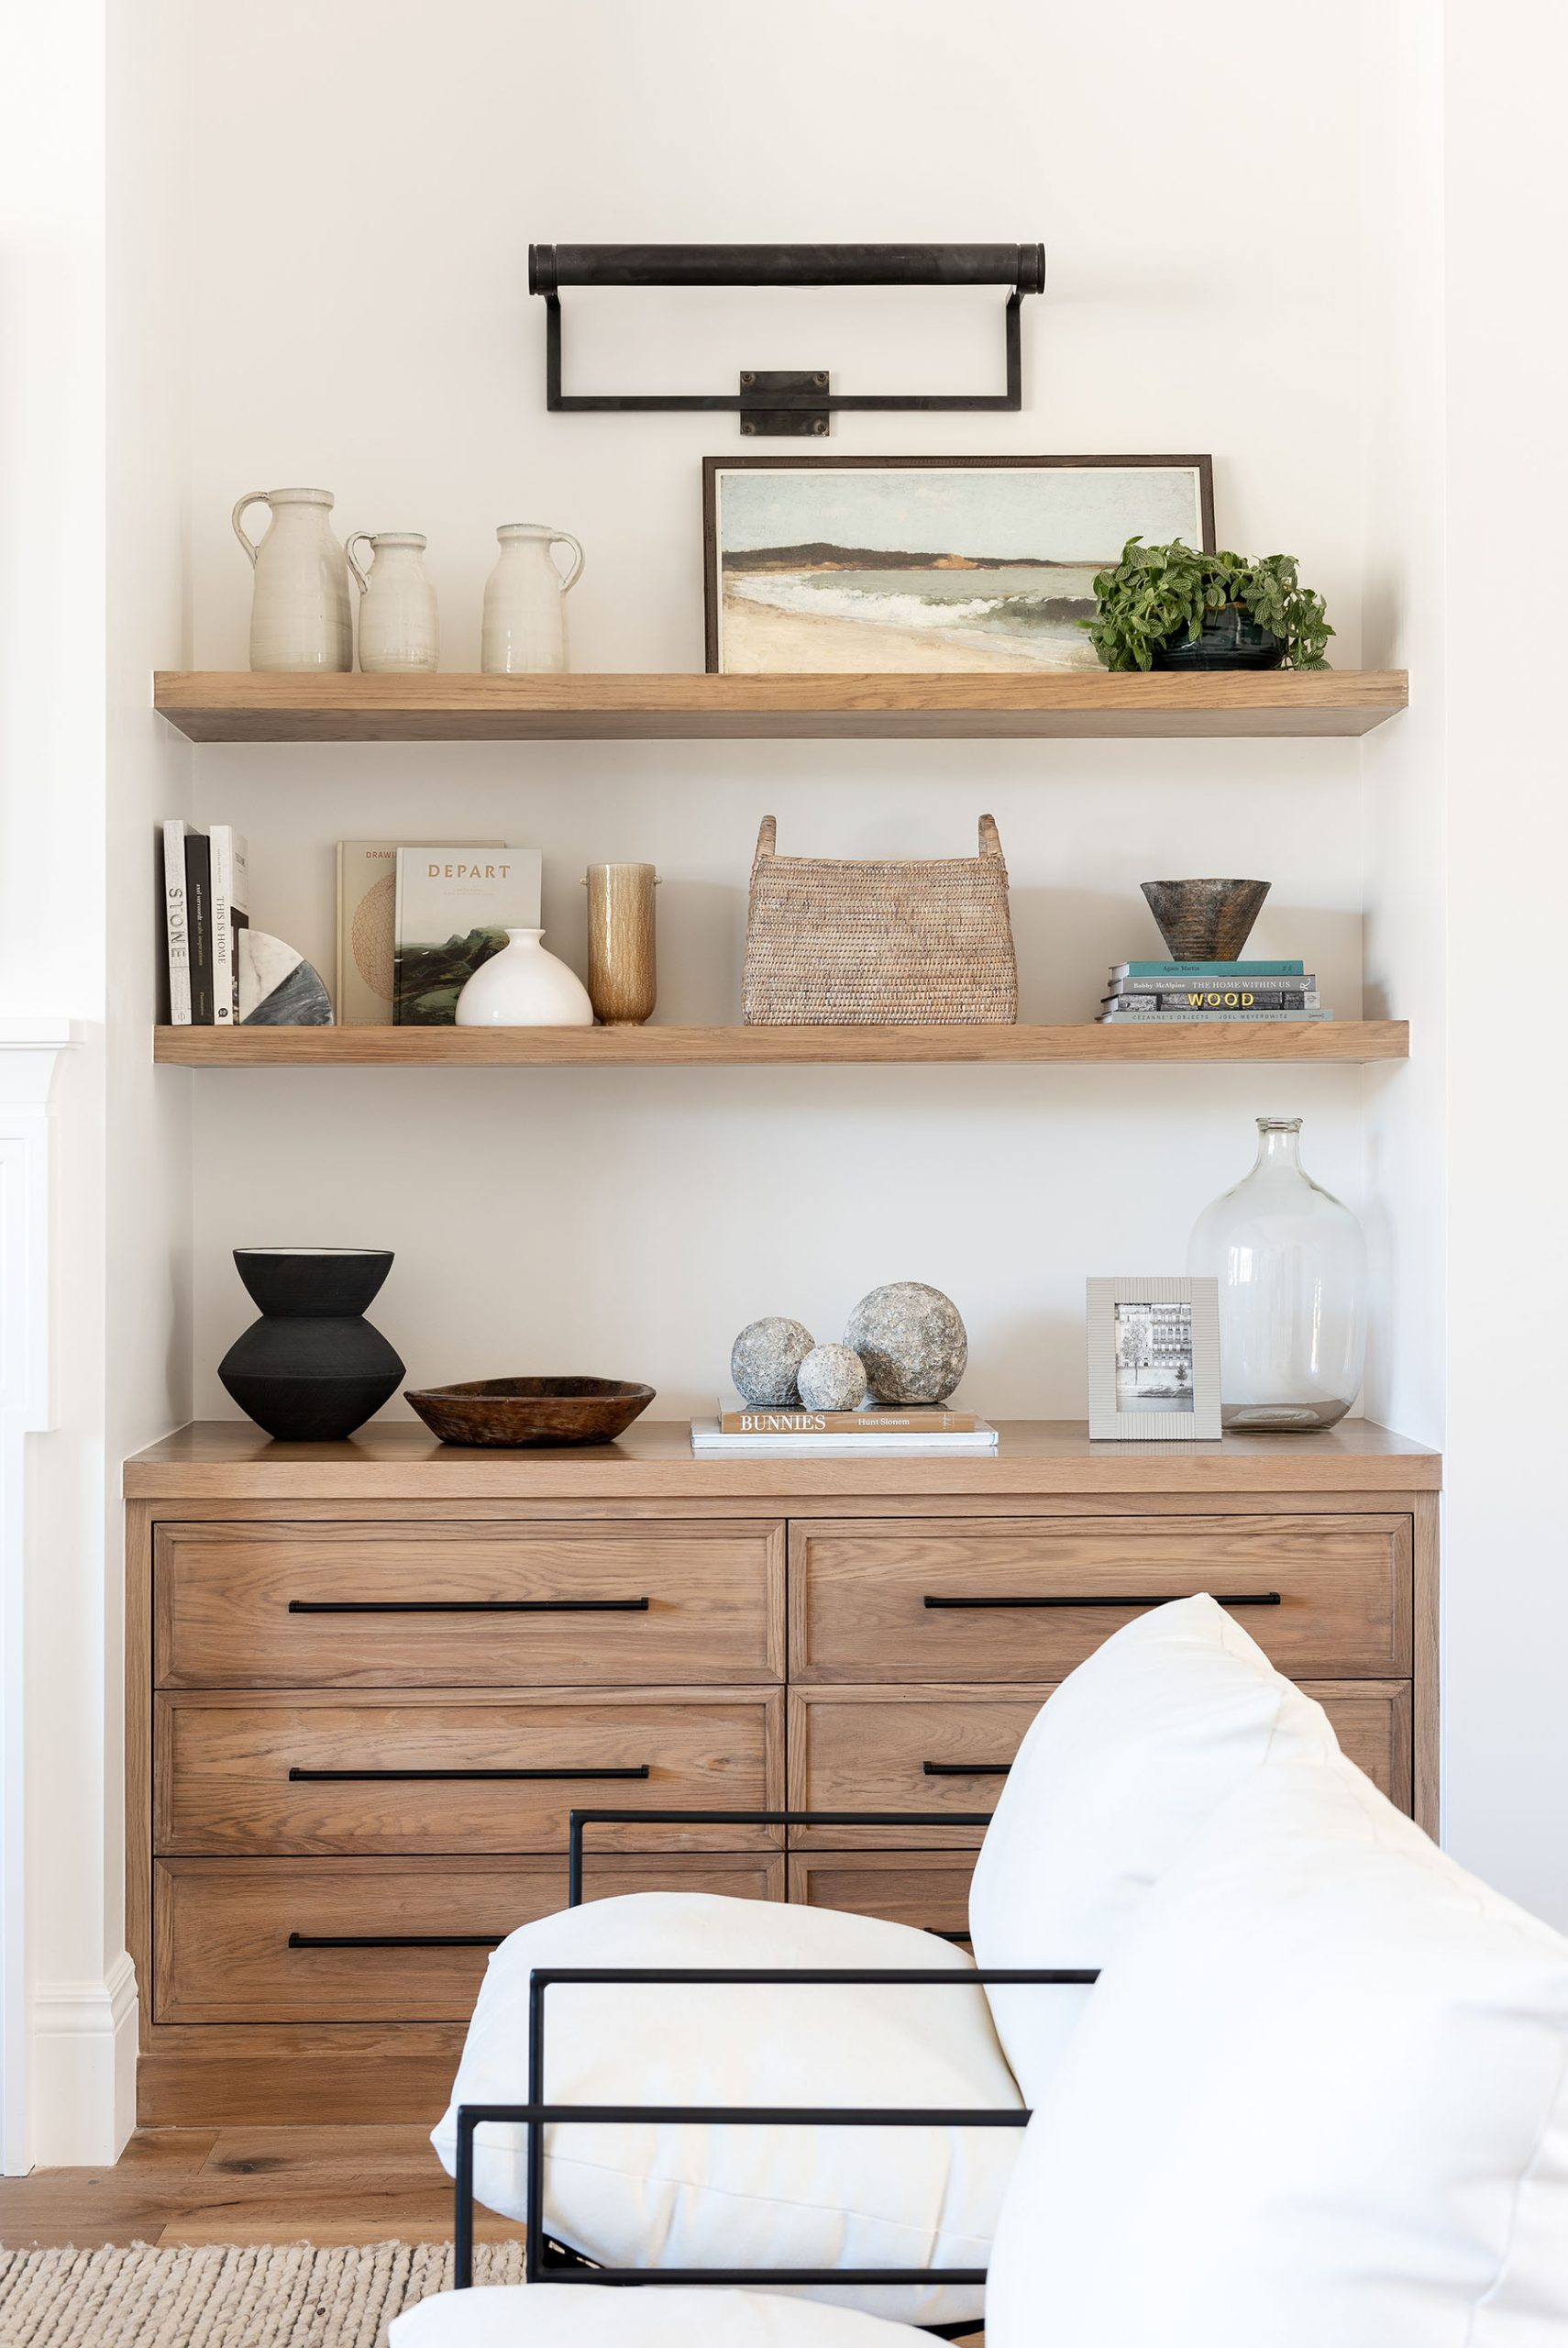 Tips For Styling Decorative Objects